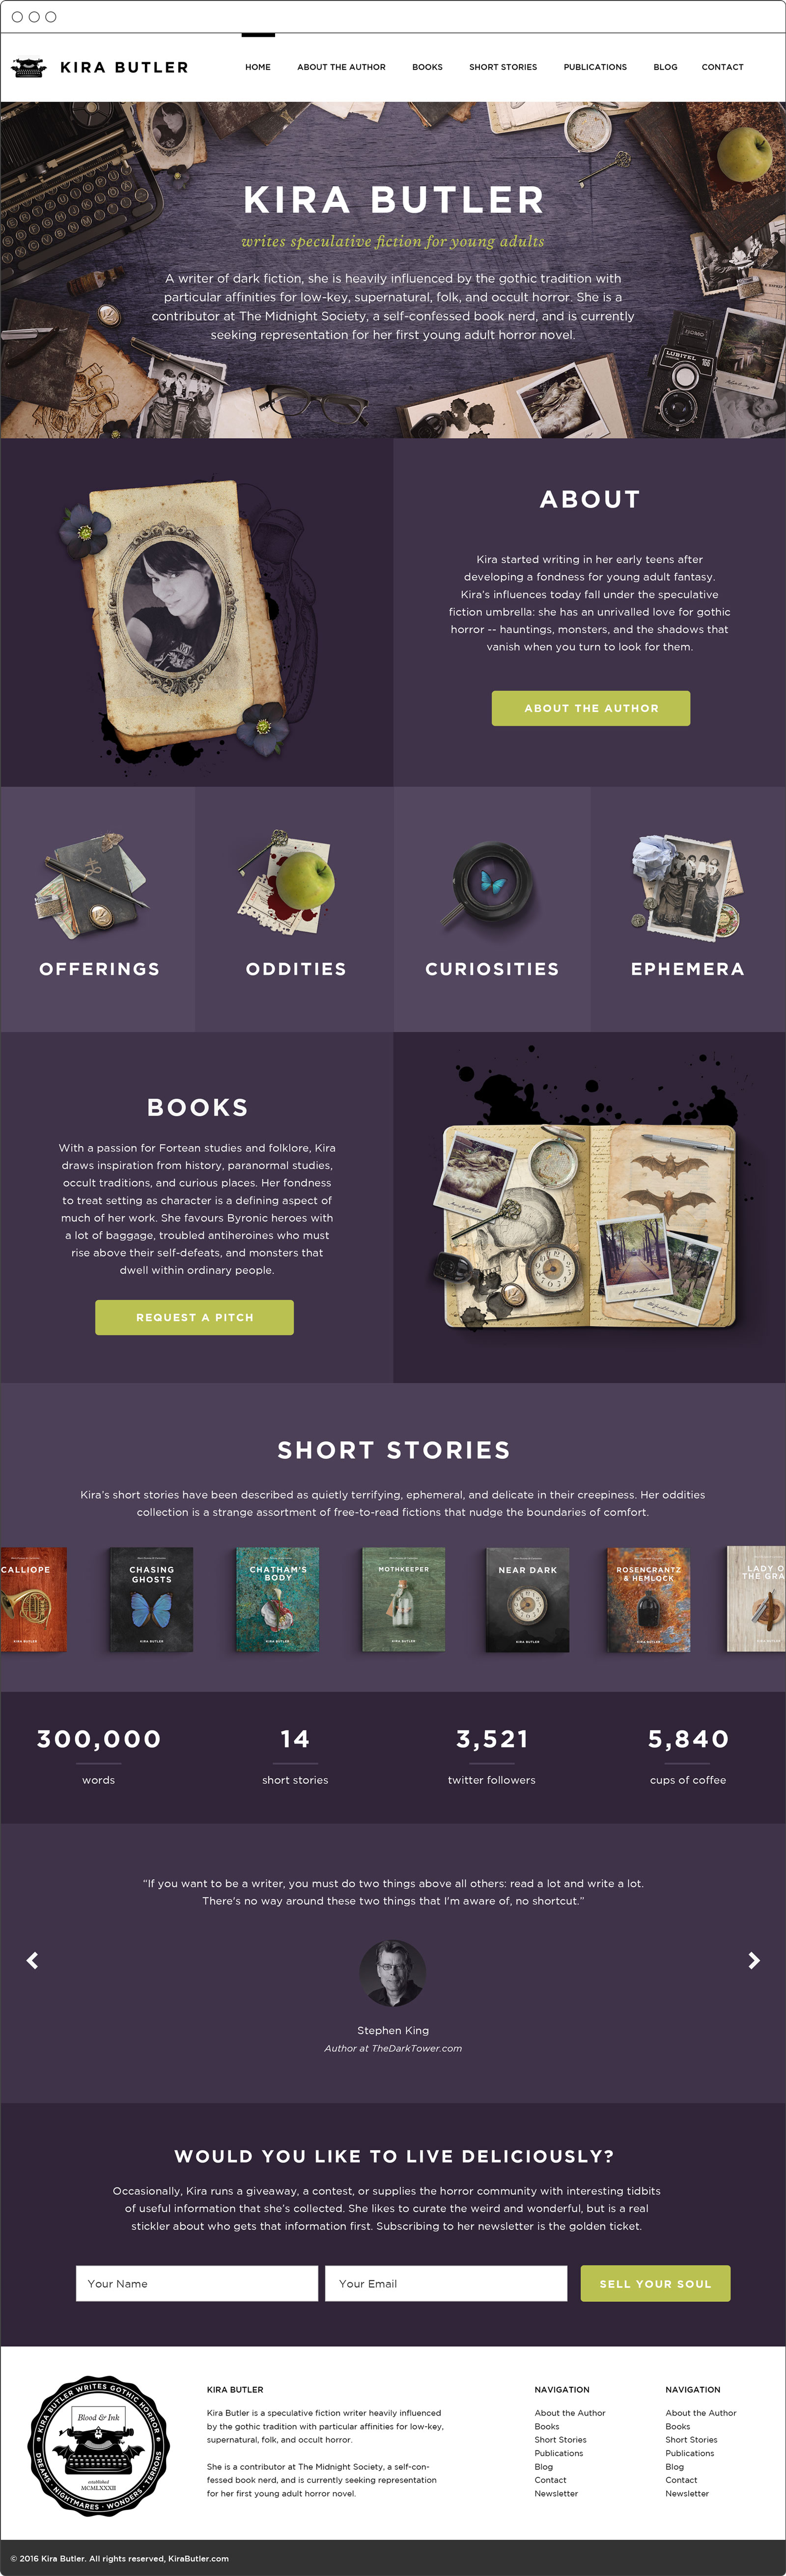 Website Design for KiraButler.com, YA Author